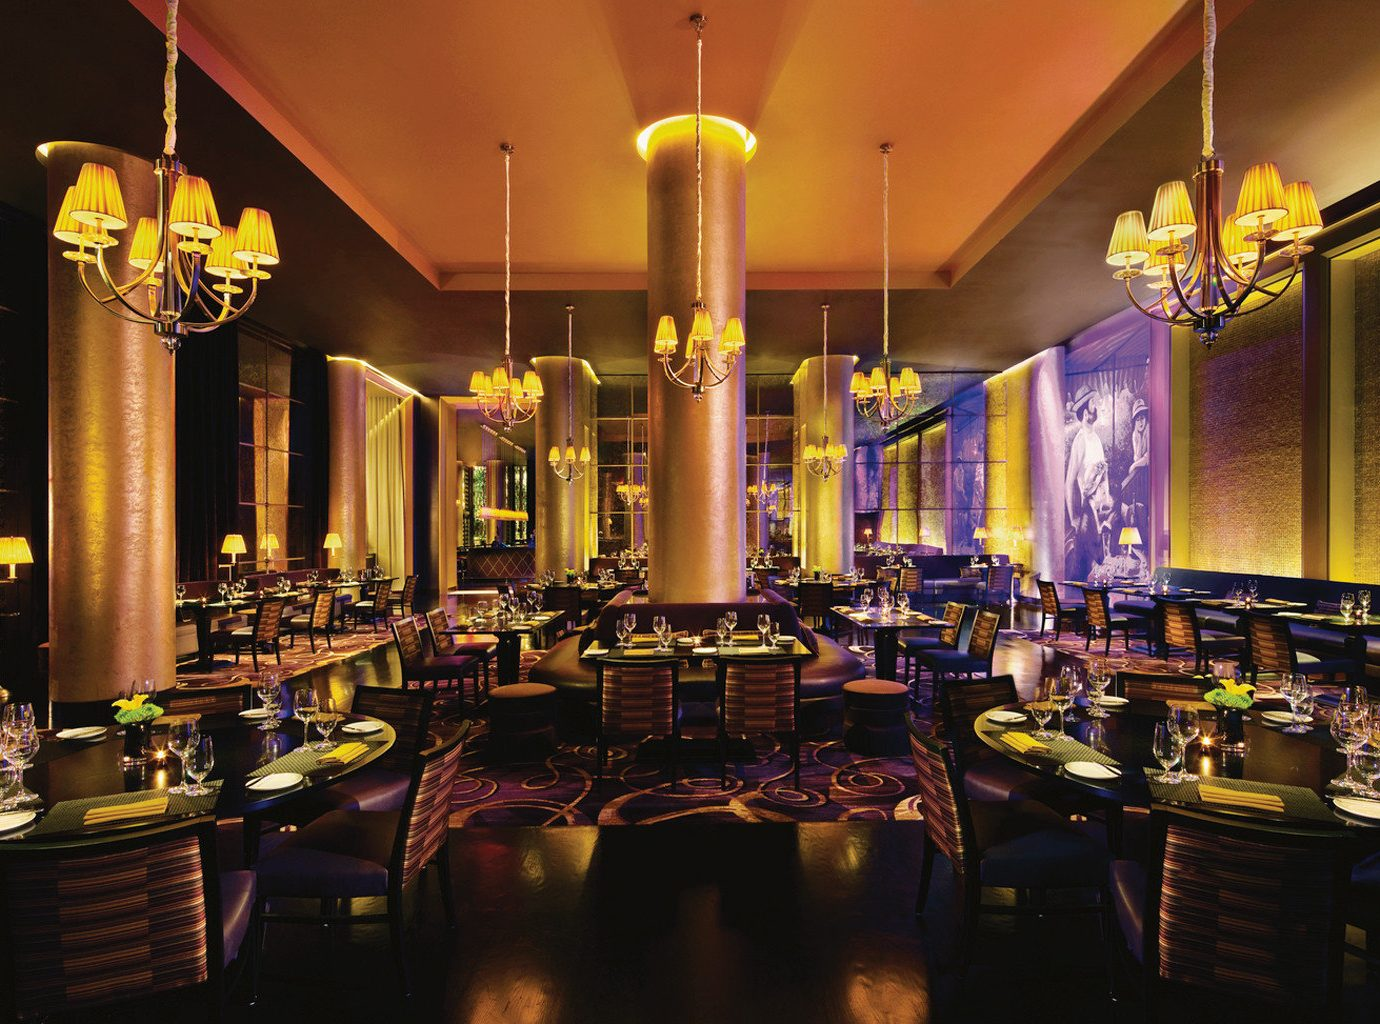 Bar Dining Drink Eat Hip Hotels Luxury Modern Romance indoor wall building restaurant meal function hall estate furniture several dining room